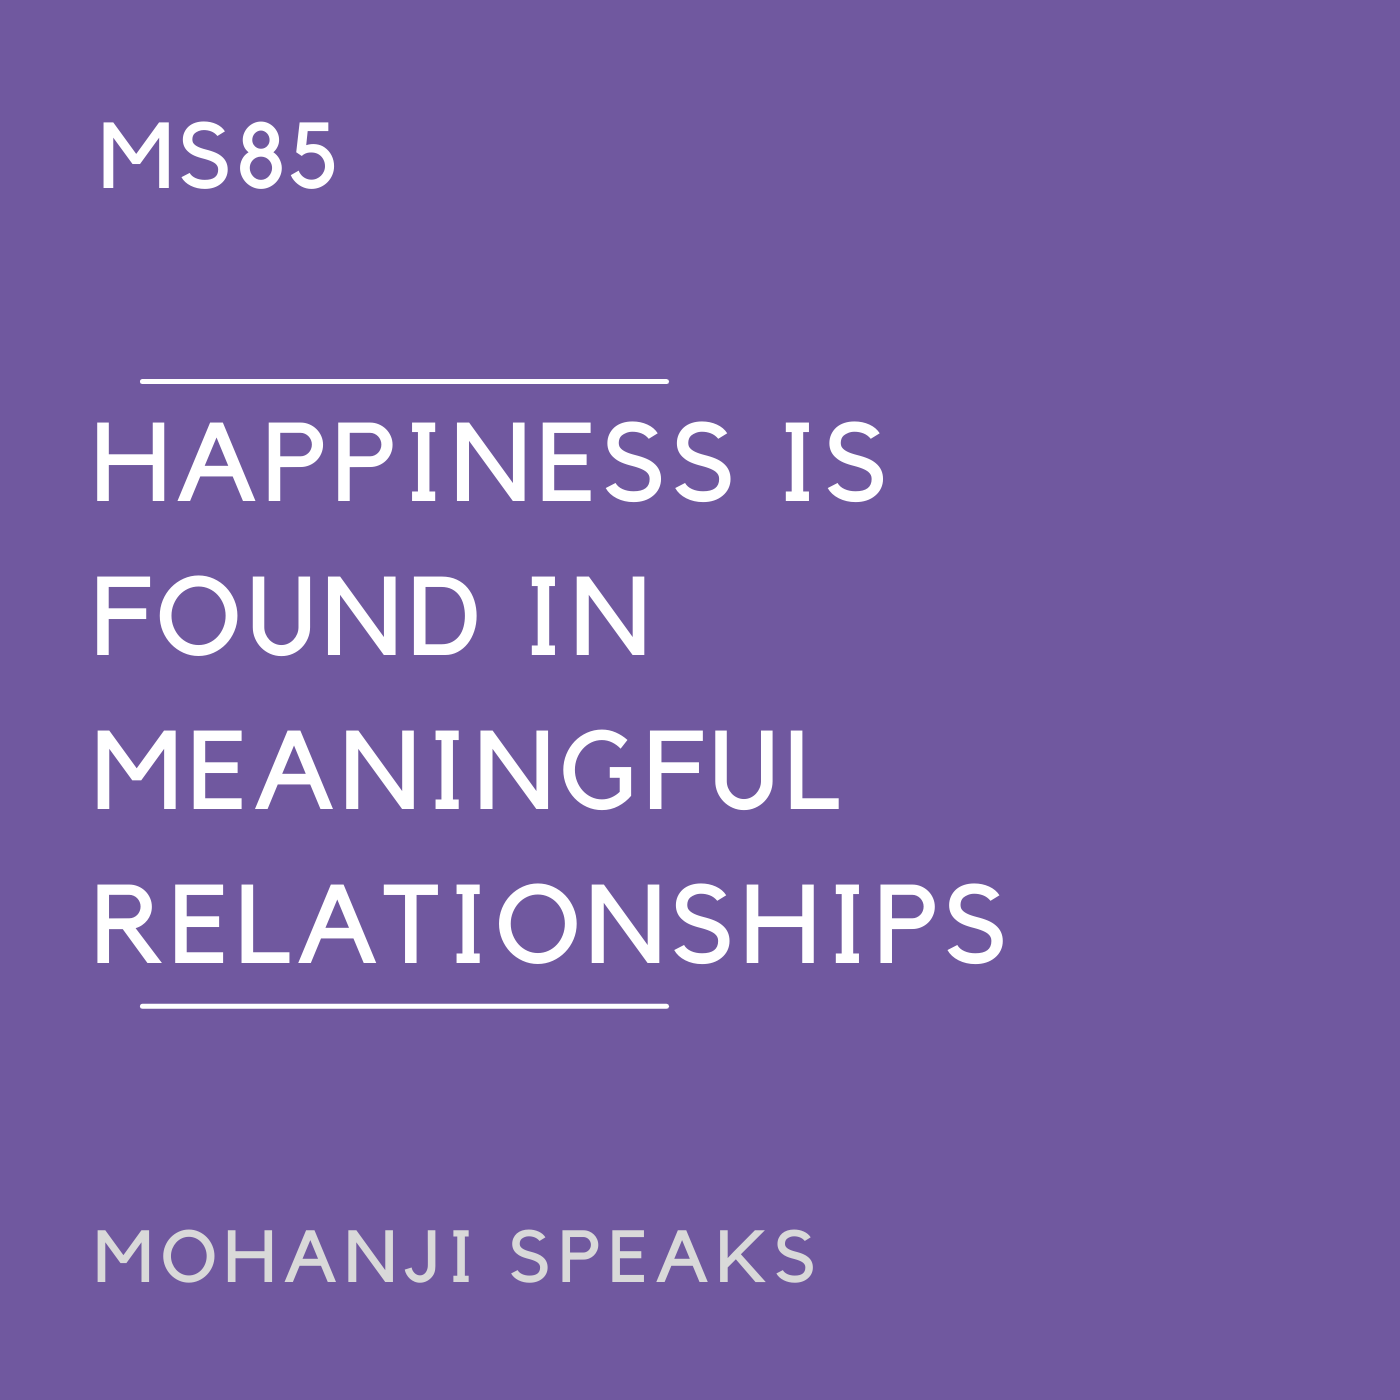 MS85 - Happiness is Found in Meaningful Relationships